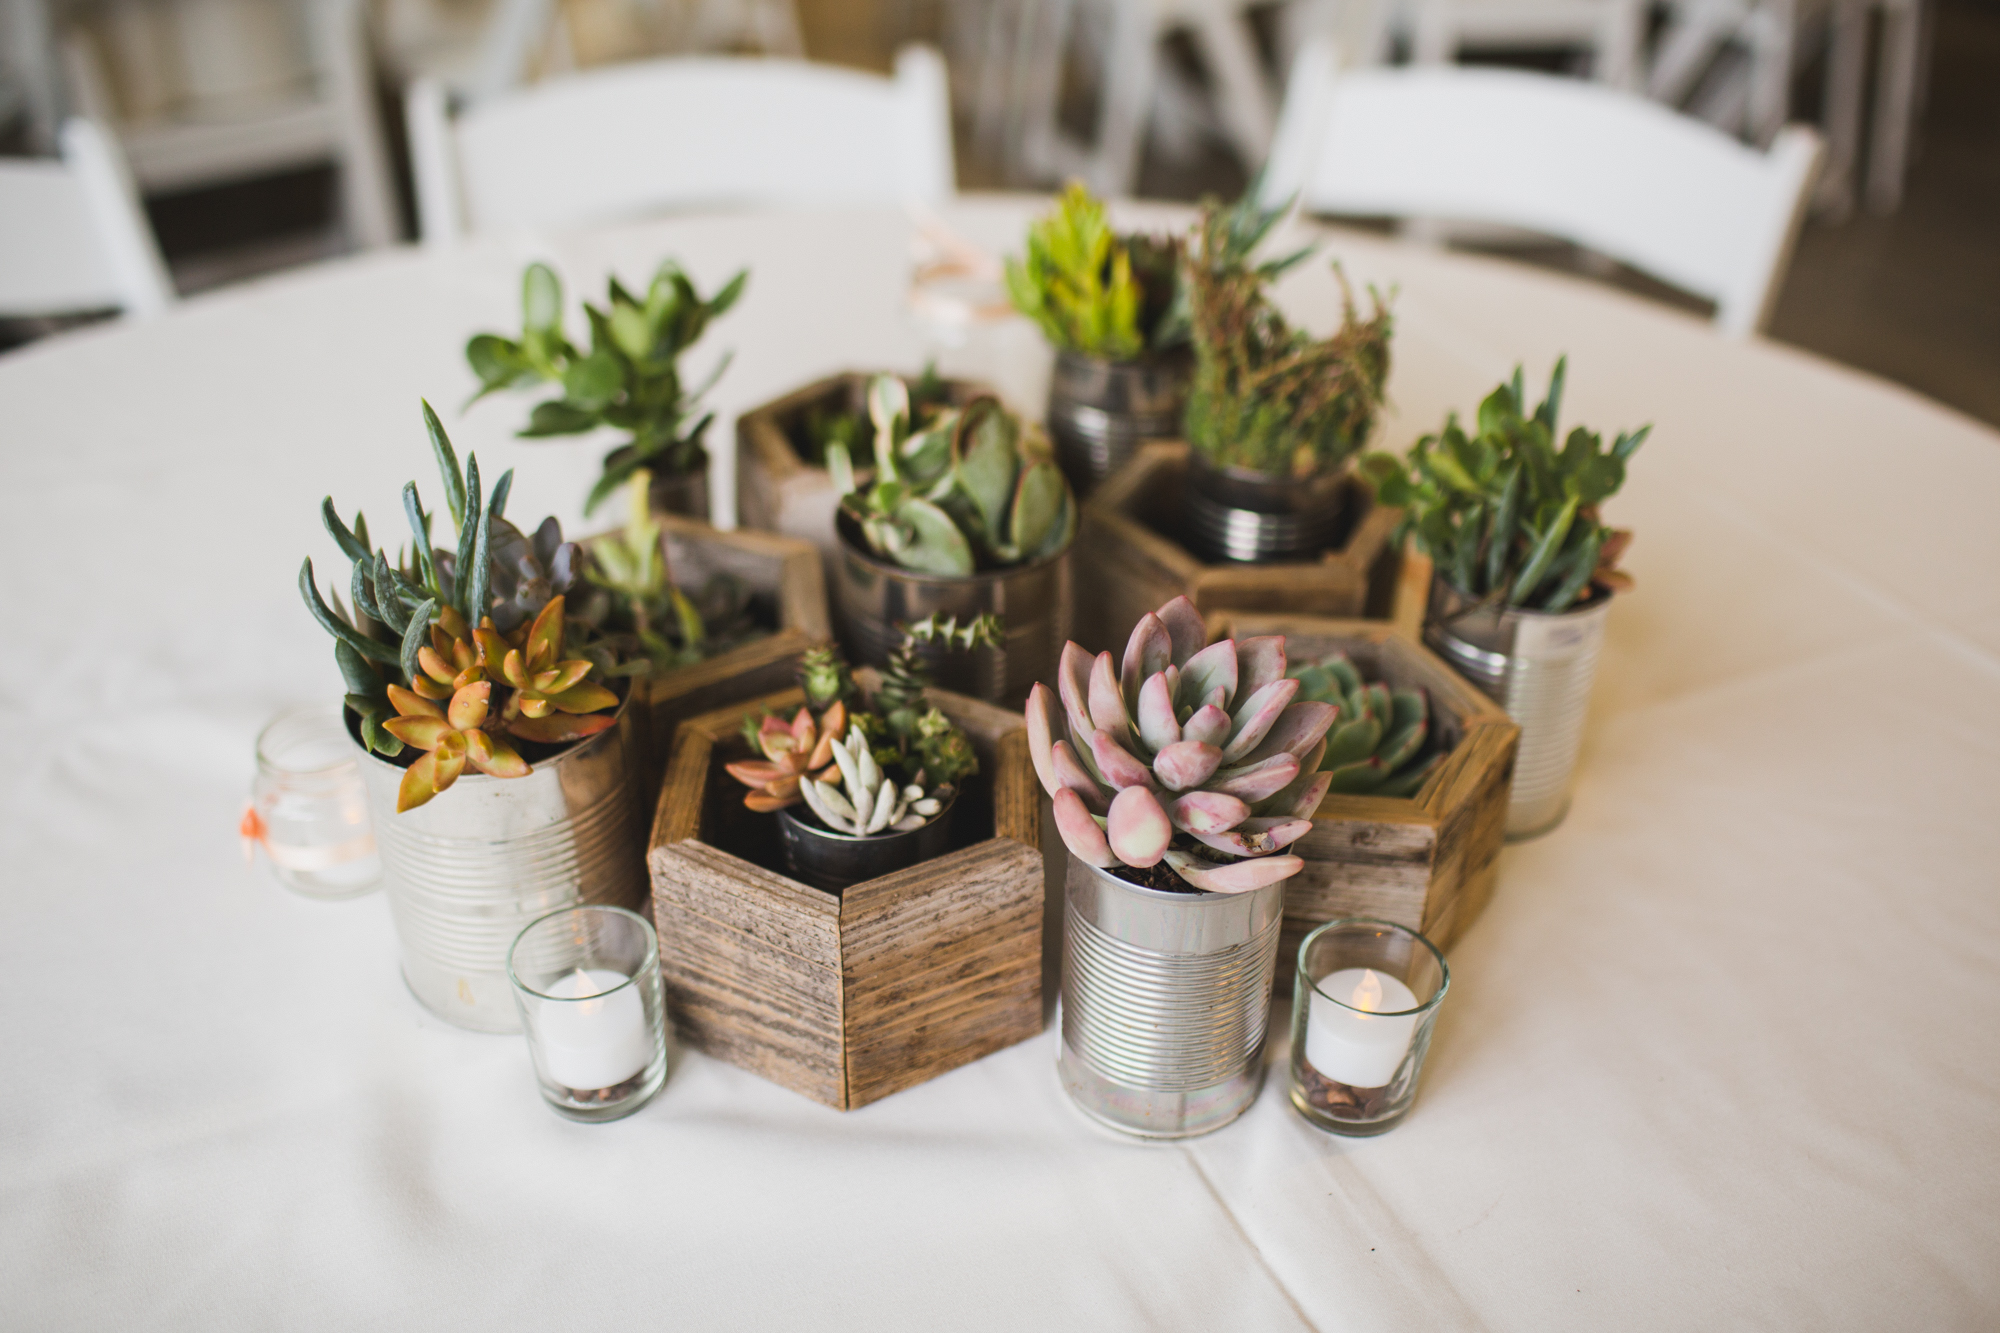 Amazing diy wedding centerpieces 2 succulents in recycled planters solutioingenieria Image collections